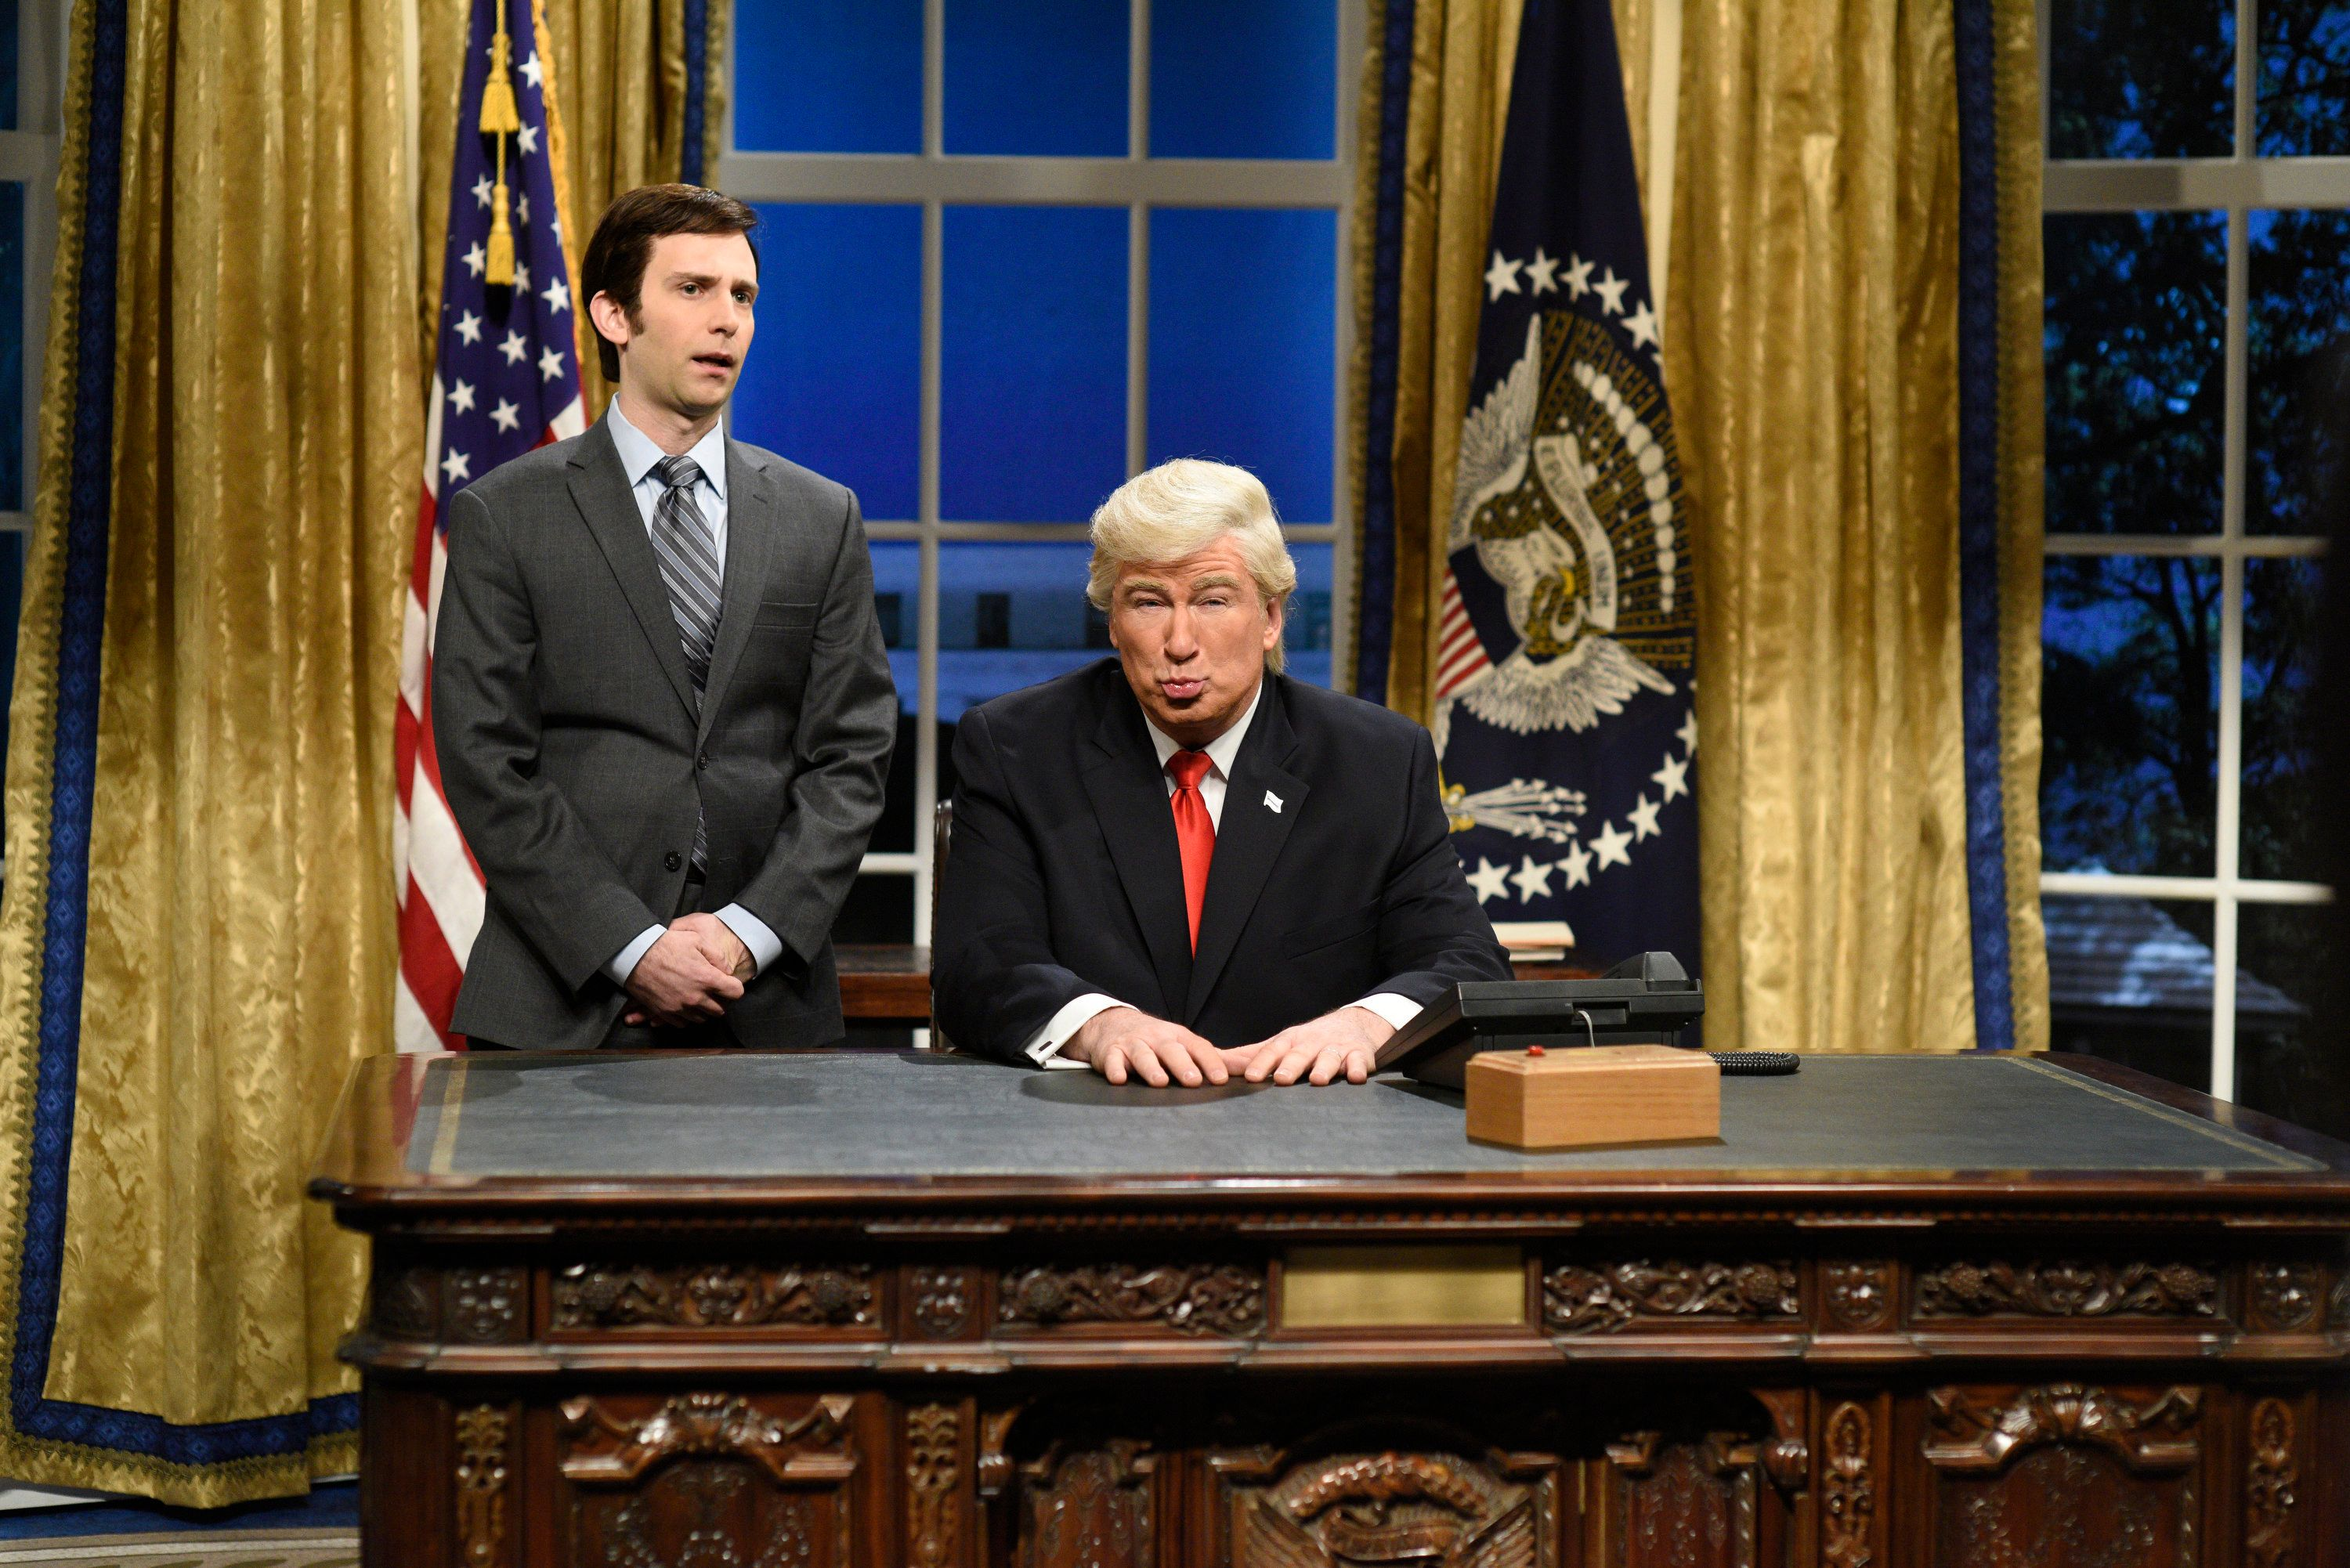 Picture Of Alec Baldwin Impersonating Trump Mistakenly Used In Newspaper